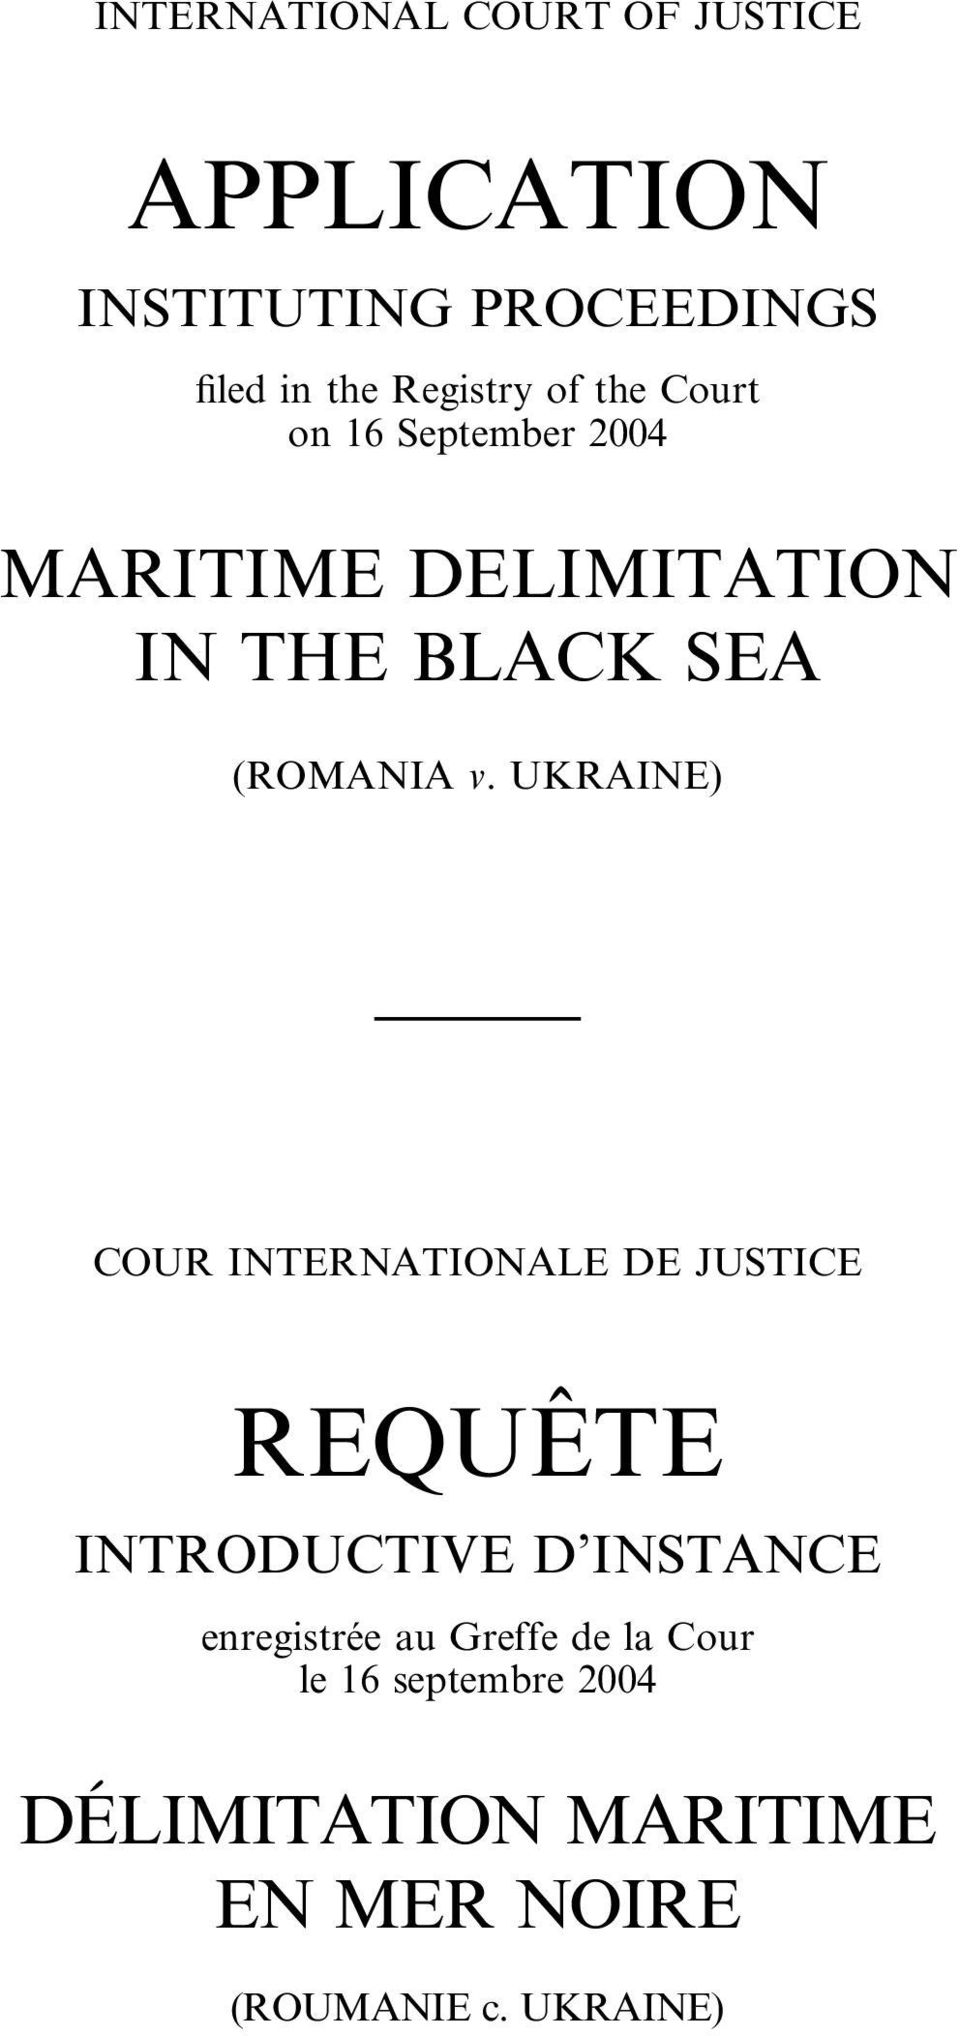 UKRAINE) COUR INTERNATIONALE DE JUSTICE REQUE TE INTRODUCTIVE D INSTANCE enregistrée au